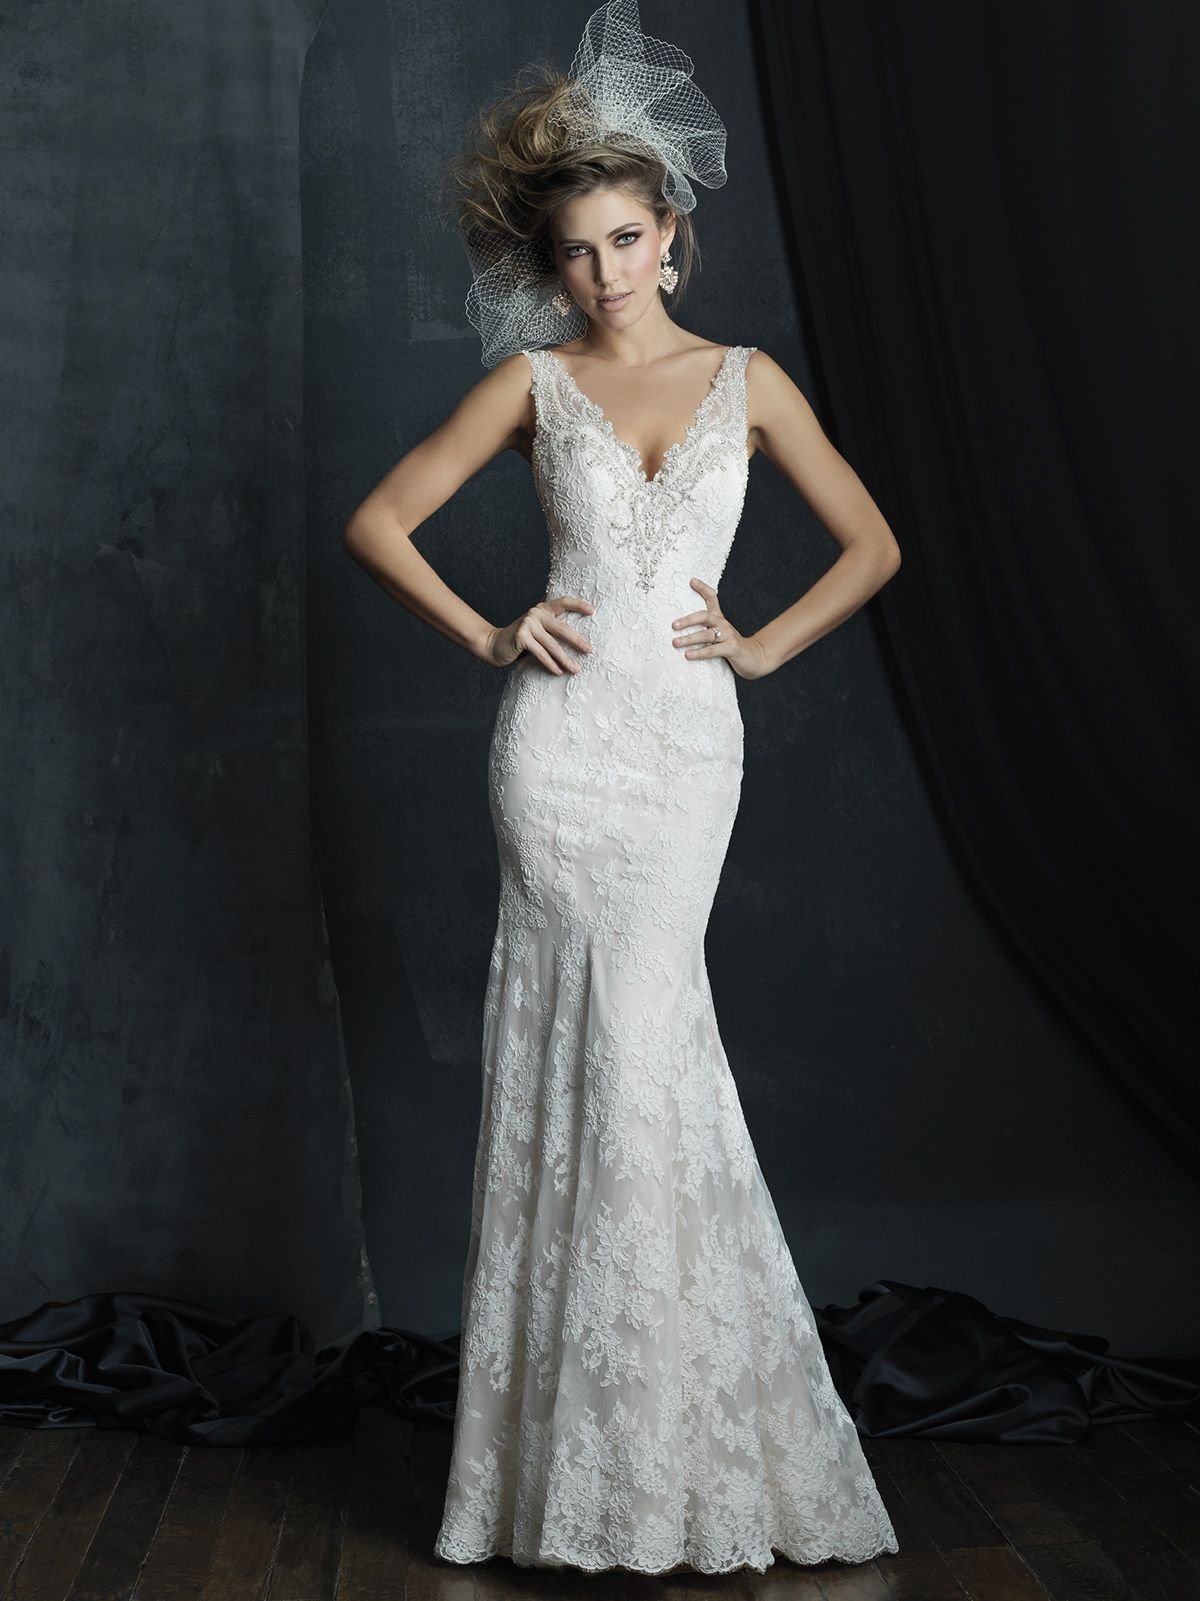 Popular Allure Bridals Couture This slim lace gown features crystalline beadwork and a delicate illusion back